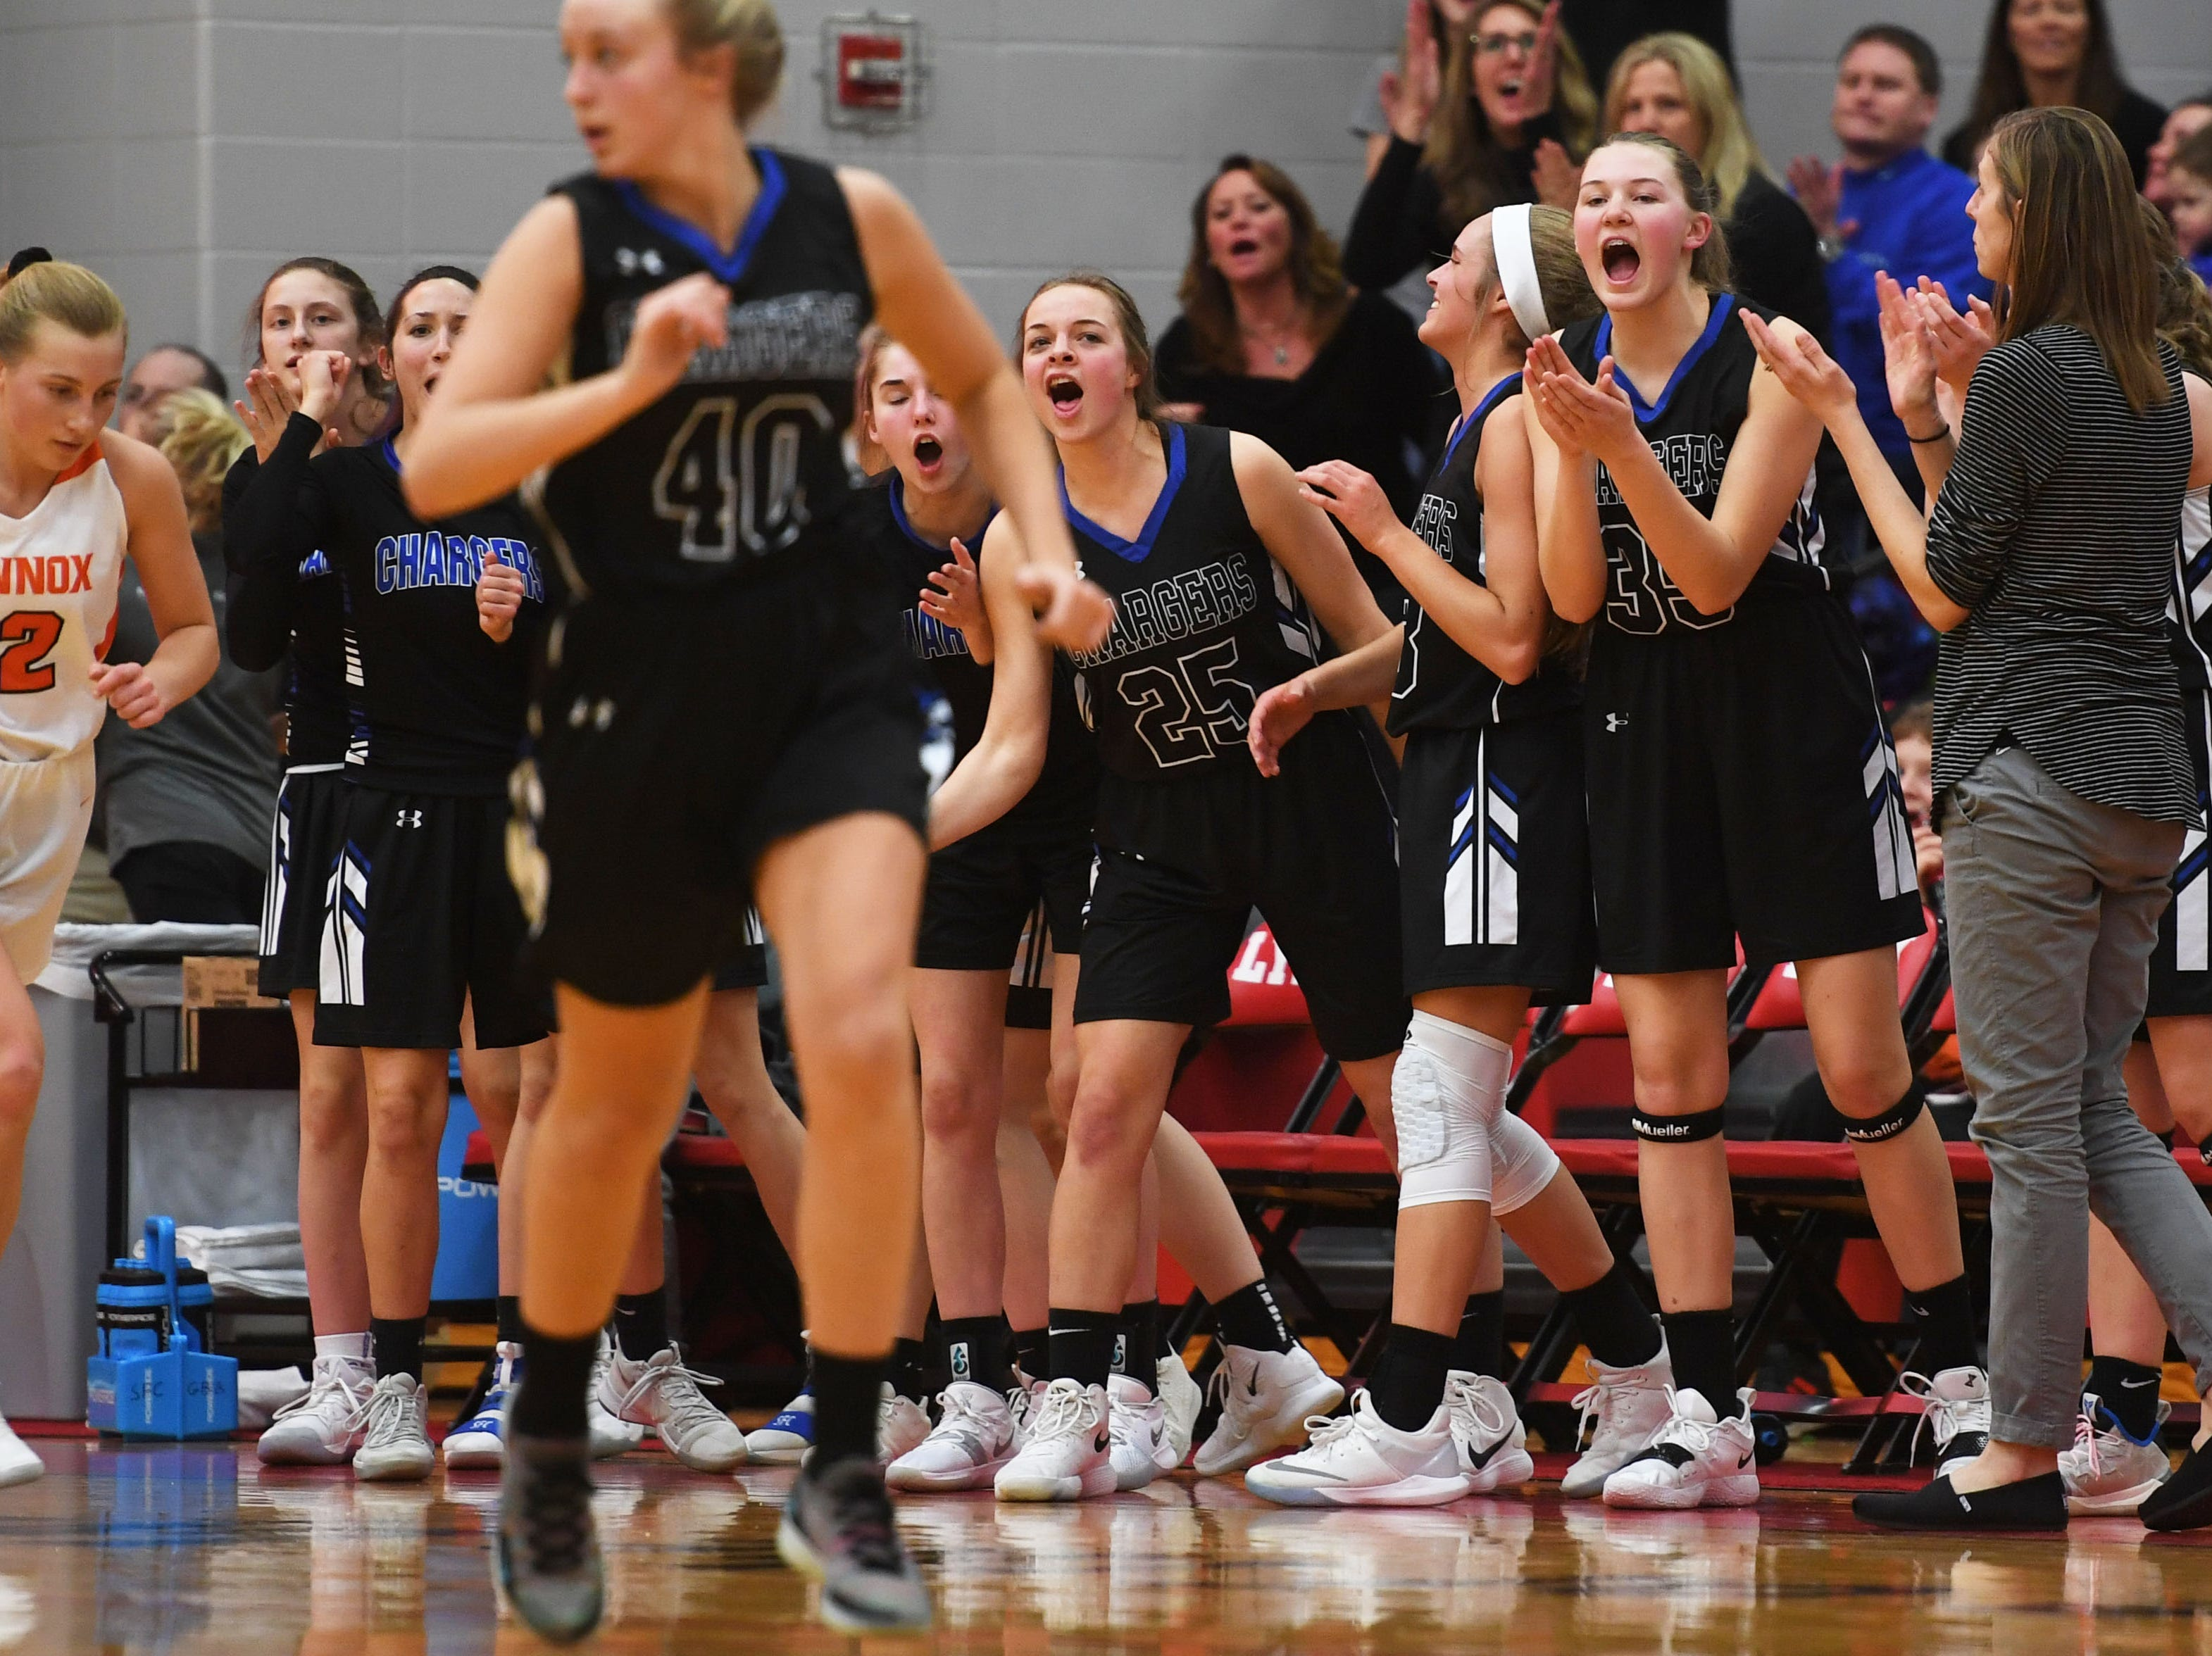 Sioux Falls Christian's sideline reacts during the game against Lennox Thursday, March 7, at Brandon Valley High School in Brandon Valley.